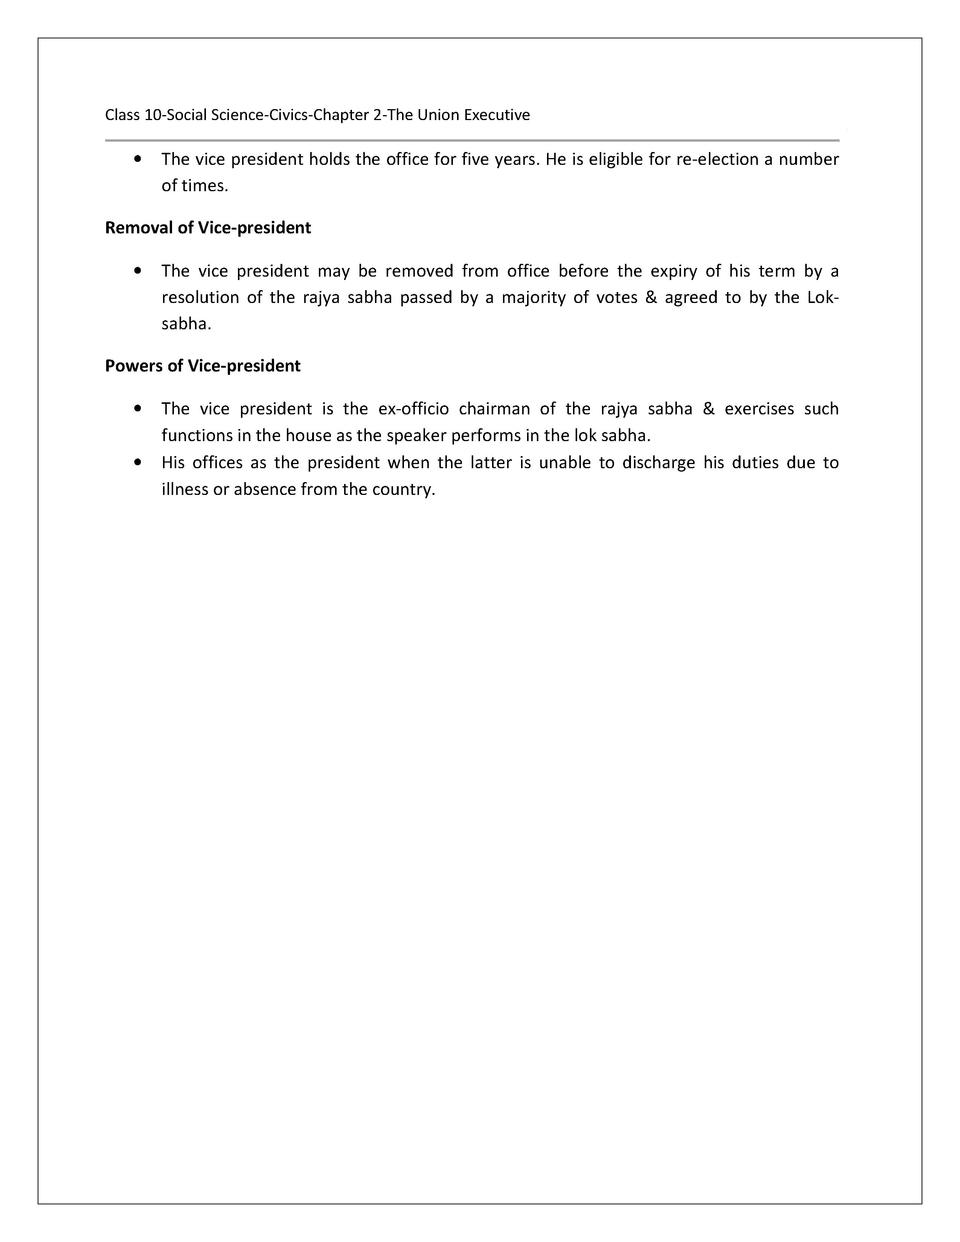 ICSE 10 CIVICS NOTES : simplebooklet com